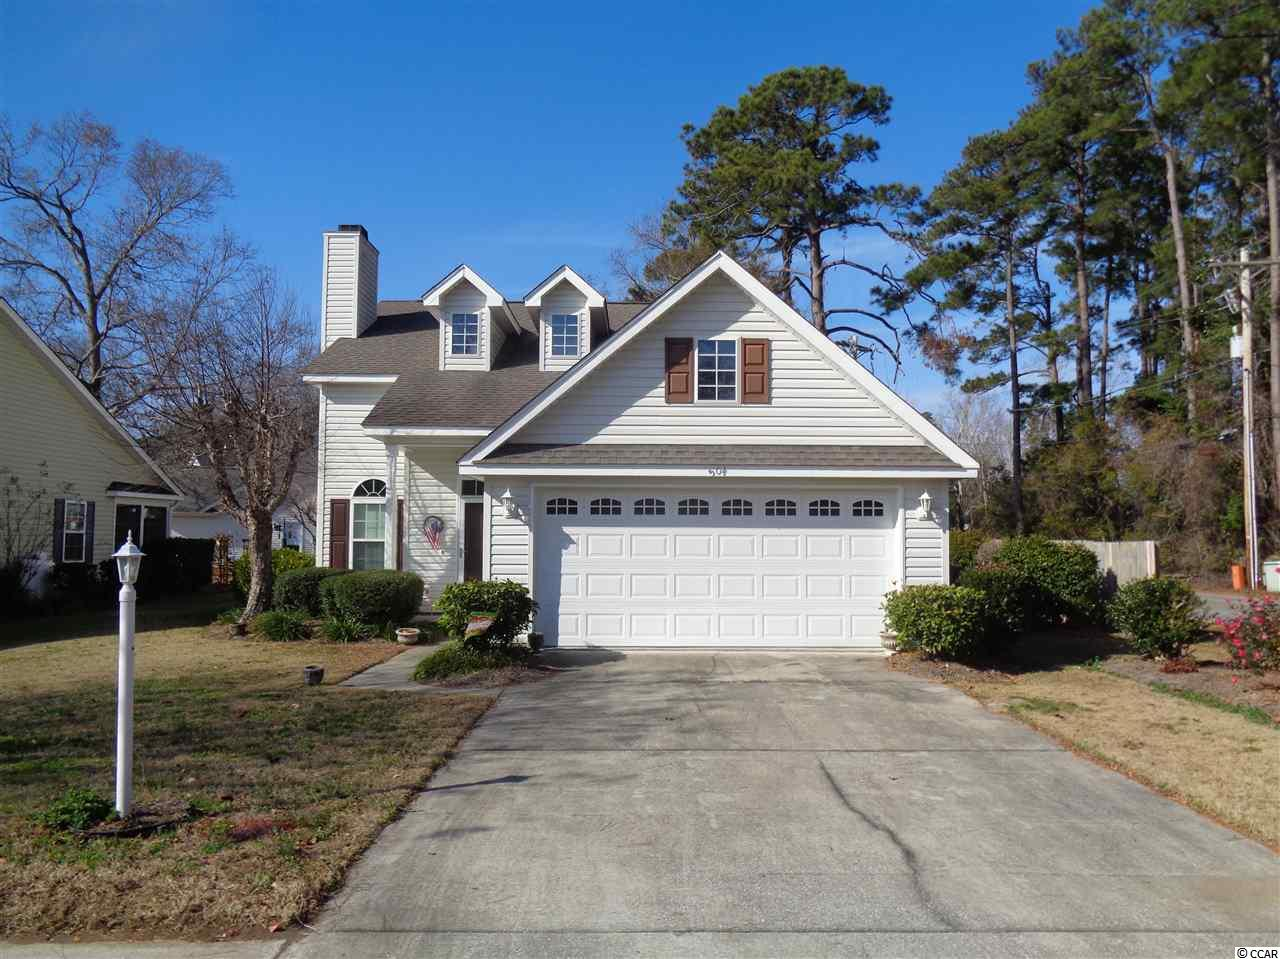 Single Family Home for Sale at 504 Waverly Loop 504 Waverly Loop Murrells Inlet, South Carolina 29576 United States